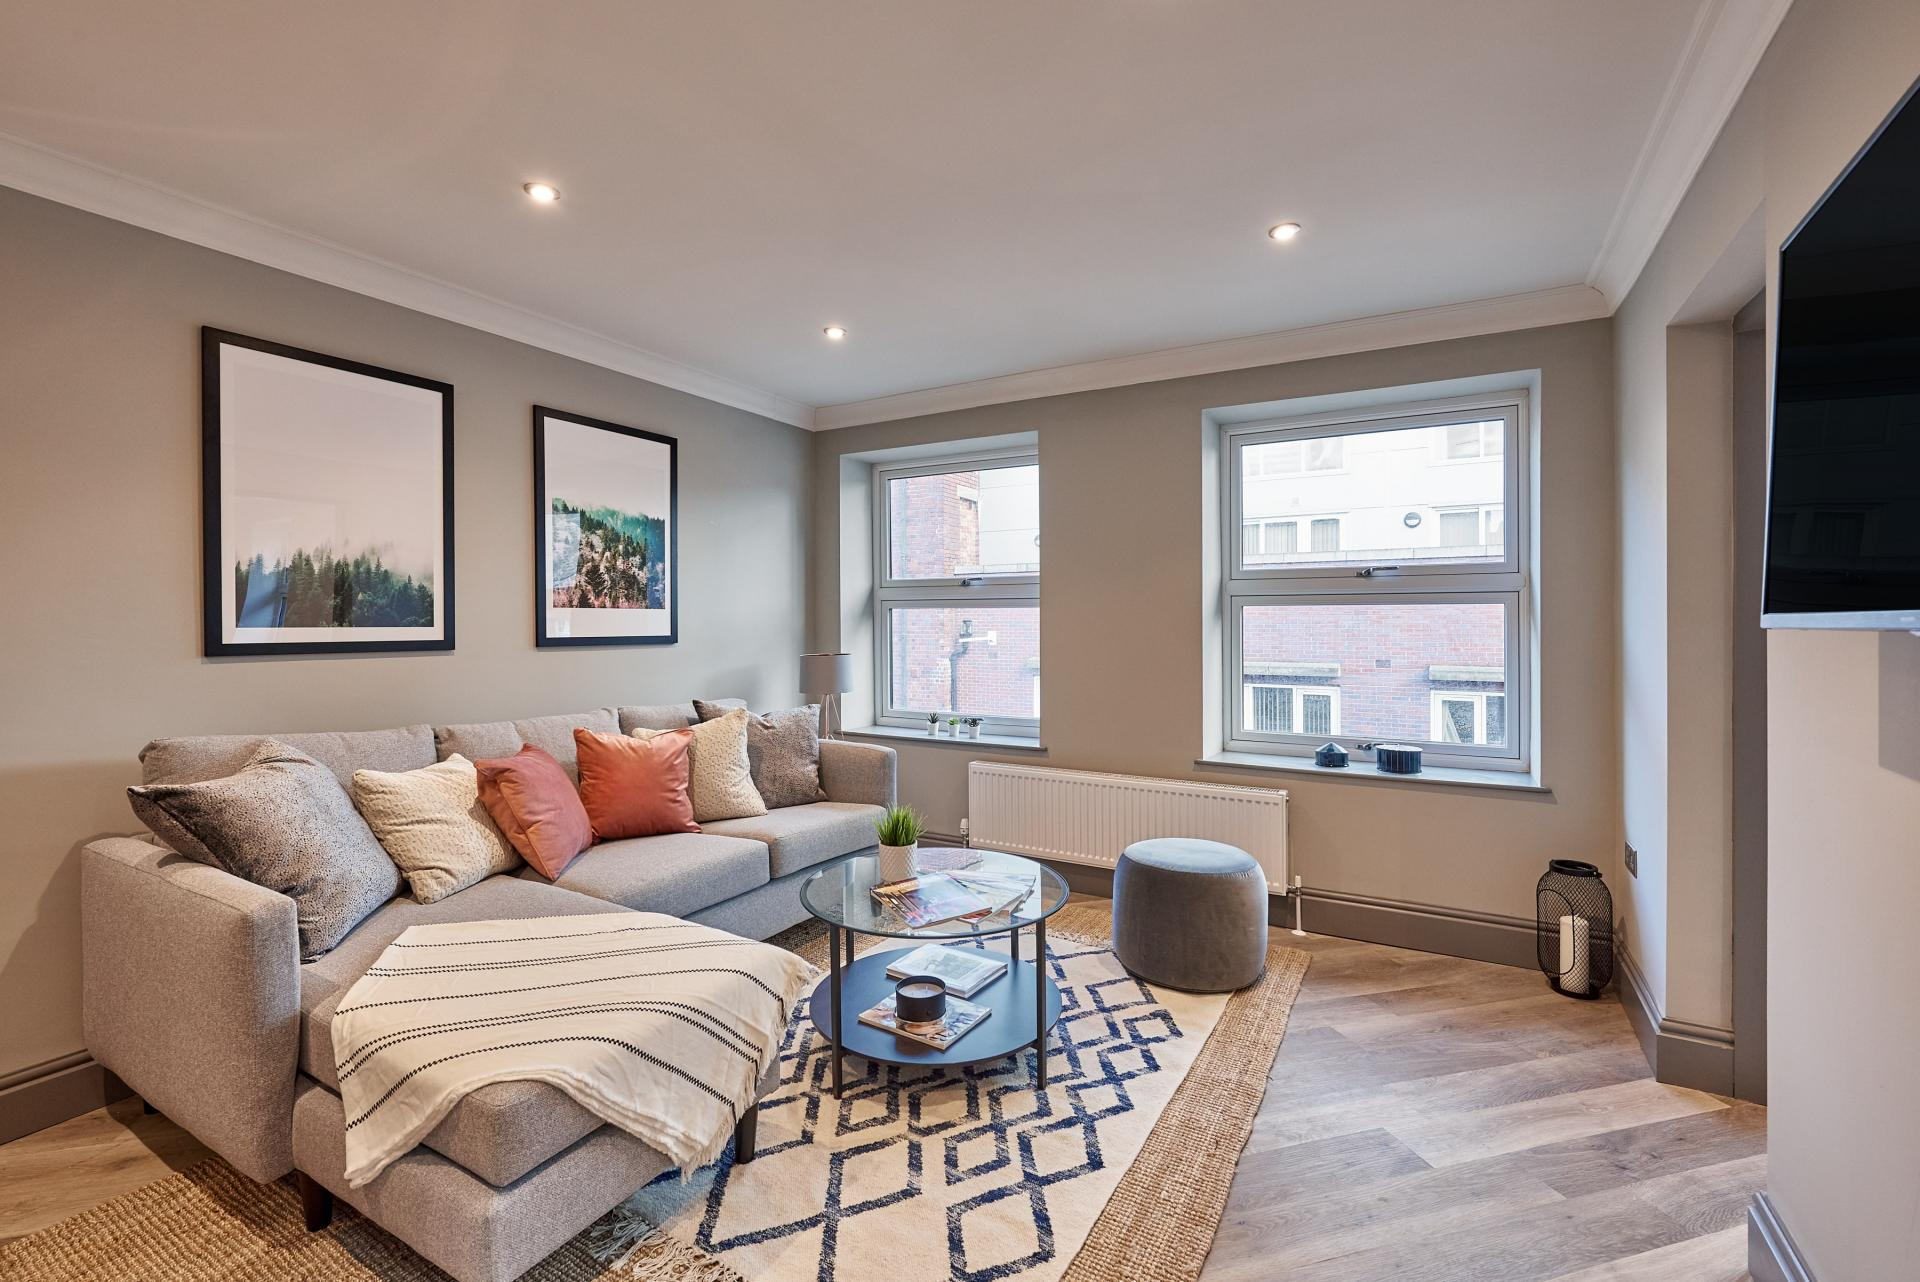 Living Room at The St Paul's Residence, Jewellery Quarter, Birmingham - Citybase Apartments